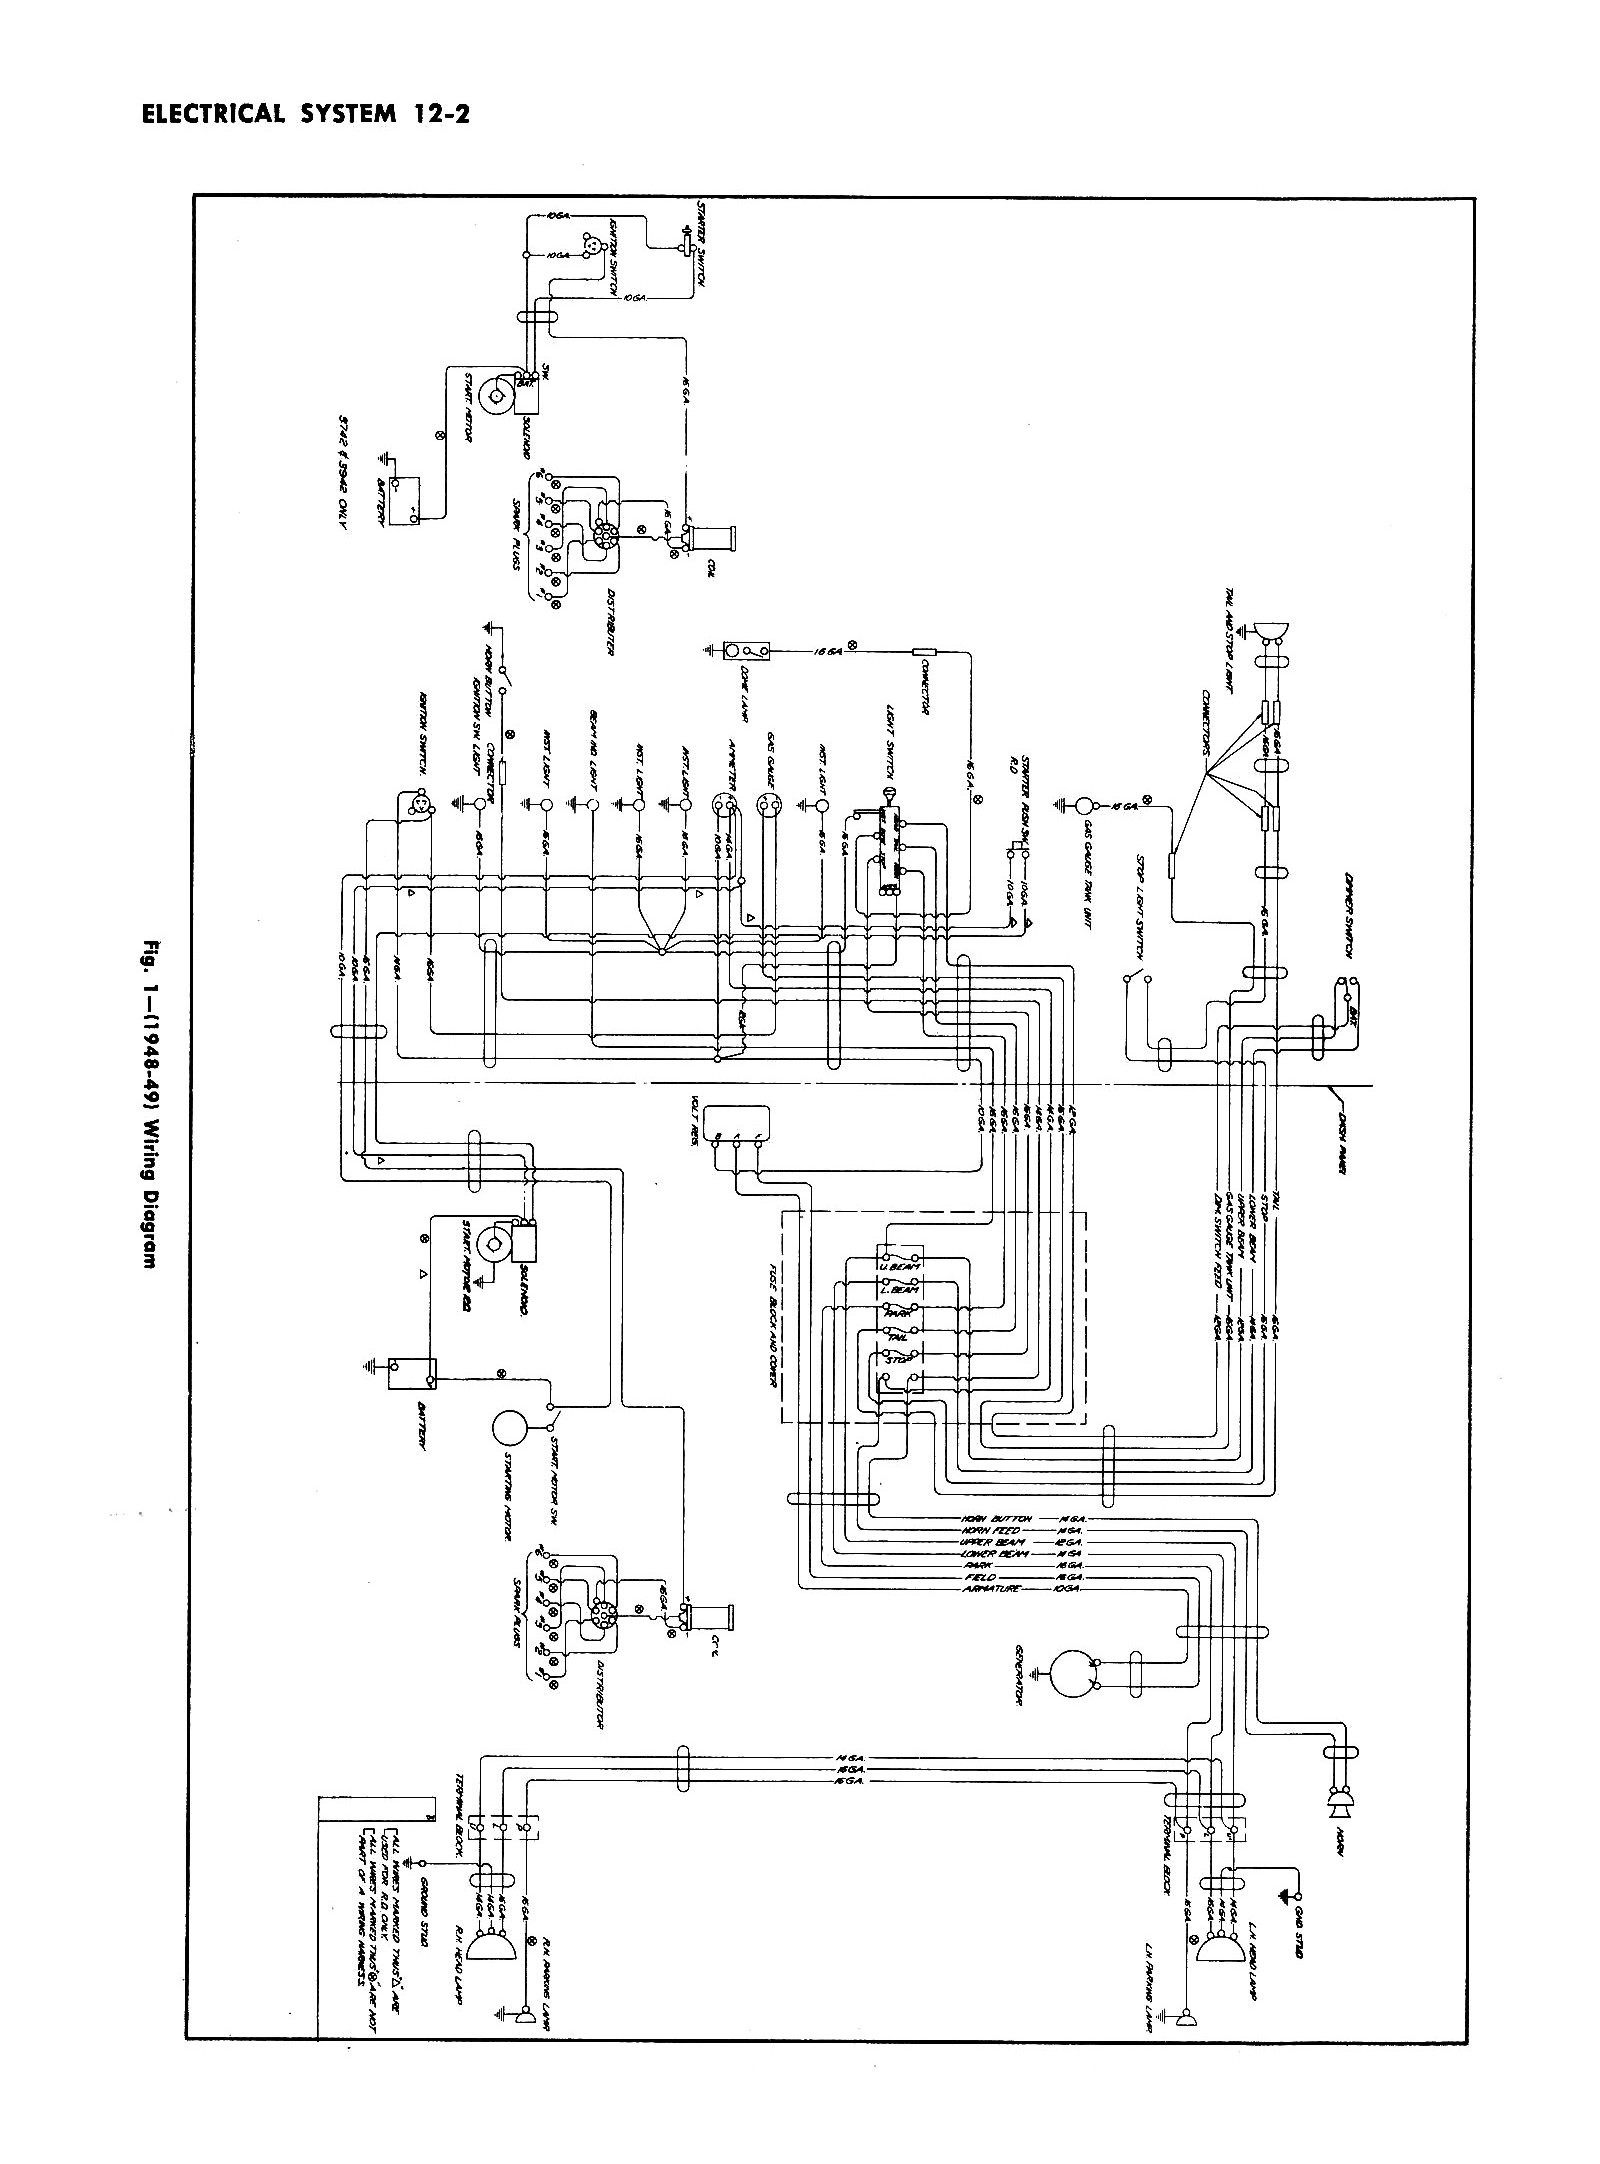 48car free chevy truck wiring diagrams gmc truck wiring diagrams free GM Factory Wiring Diagram at soozxer.org